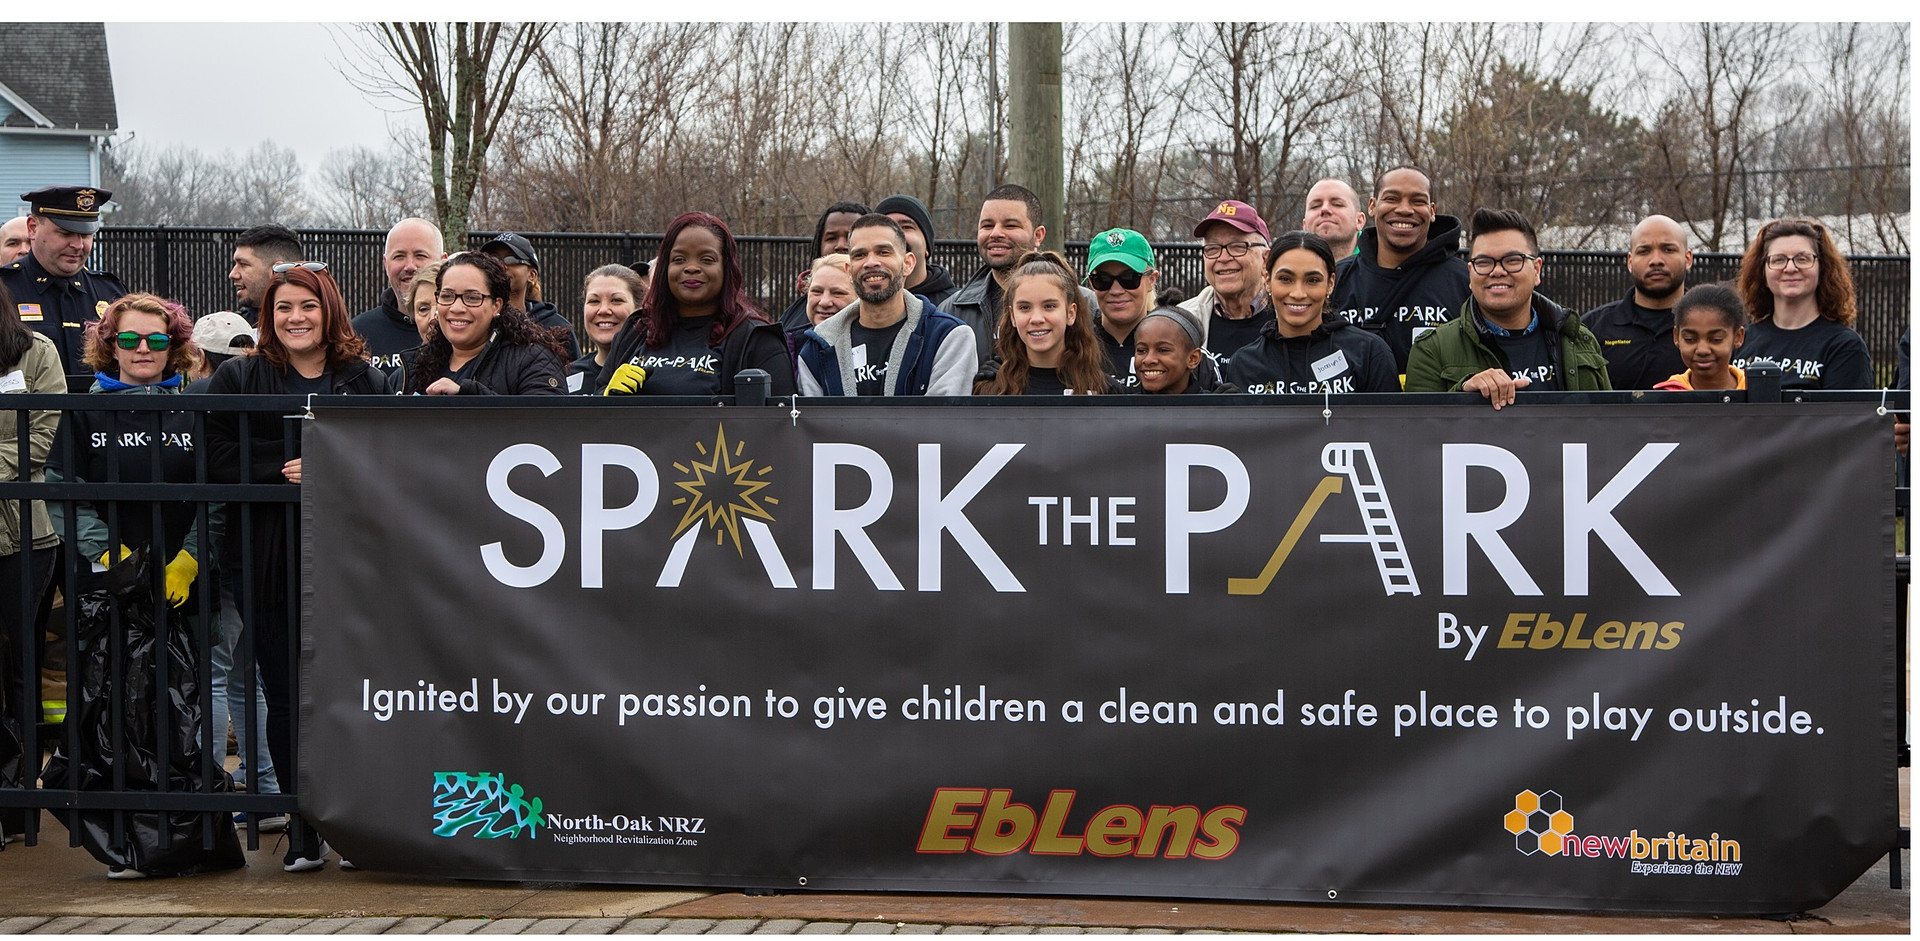 Eblen's employees teamed up with the North Oak neighborhood and the City of New Britain to clean up Willow St. Park in April 2019 for the Spark the Park event.  Eblen's was founded in New Britain 70 years ago.